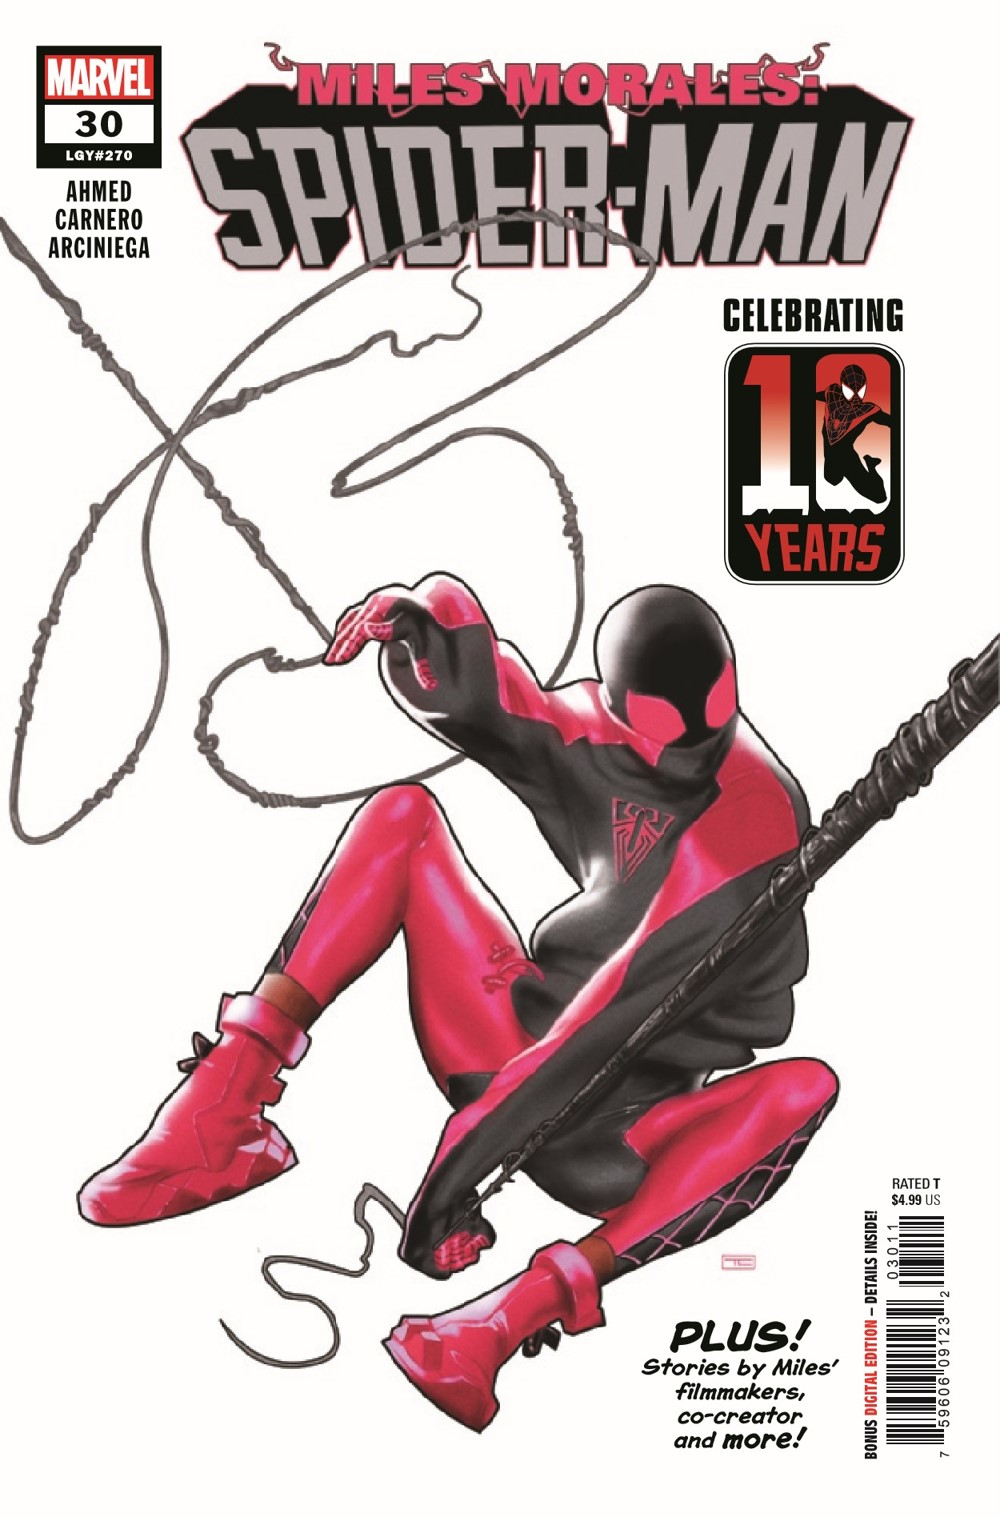 MMSM2018030_Preview-1 ComicList Previews: MILES MORALES SPIDER-MAN #30